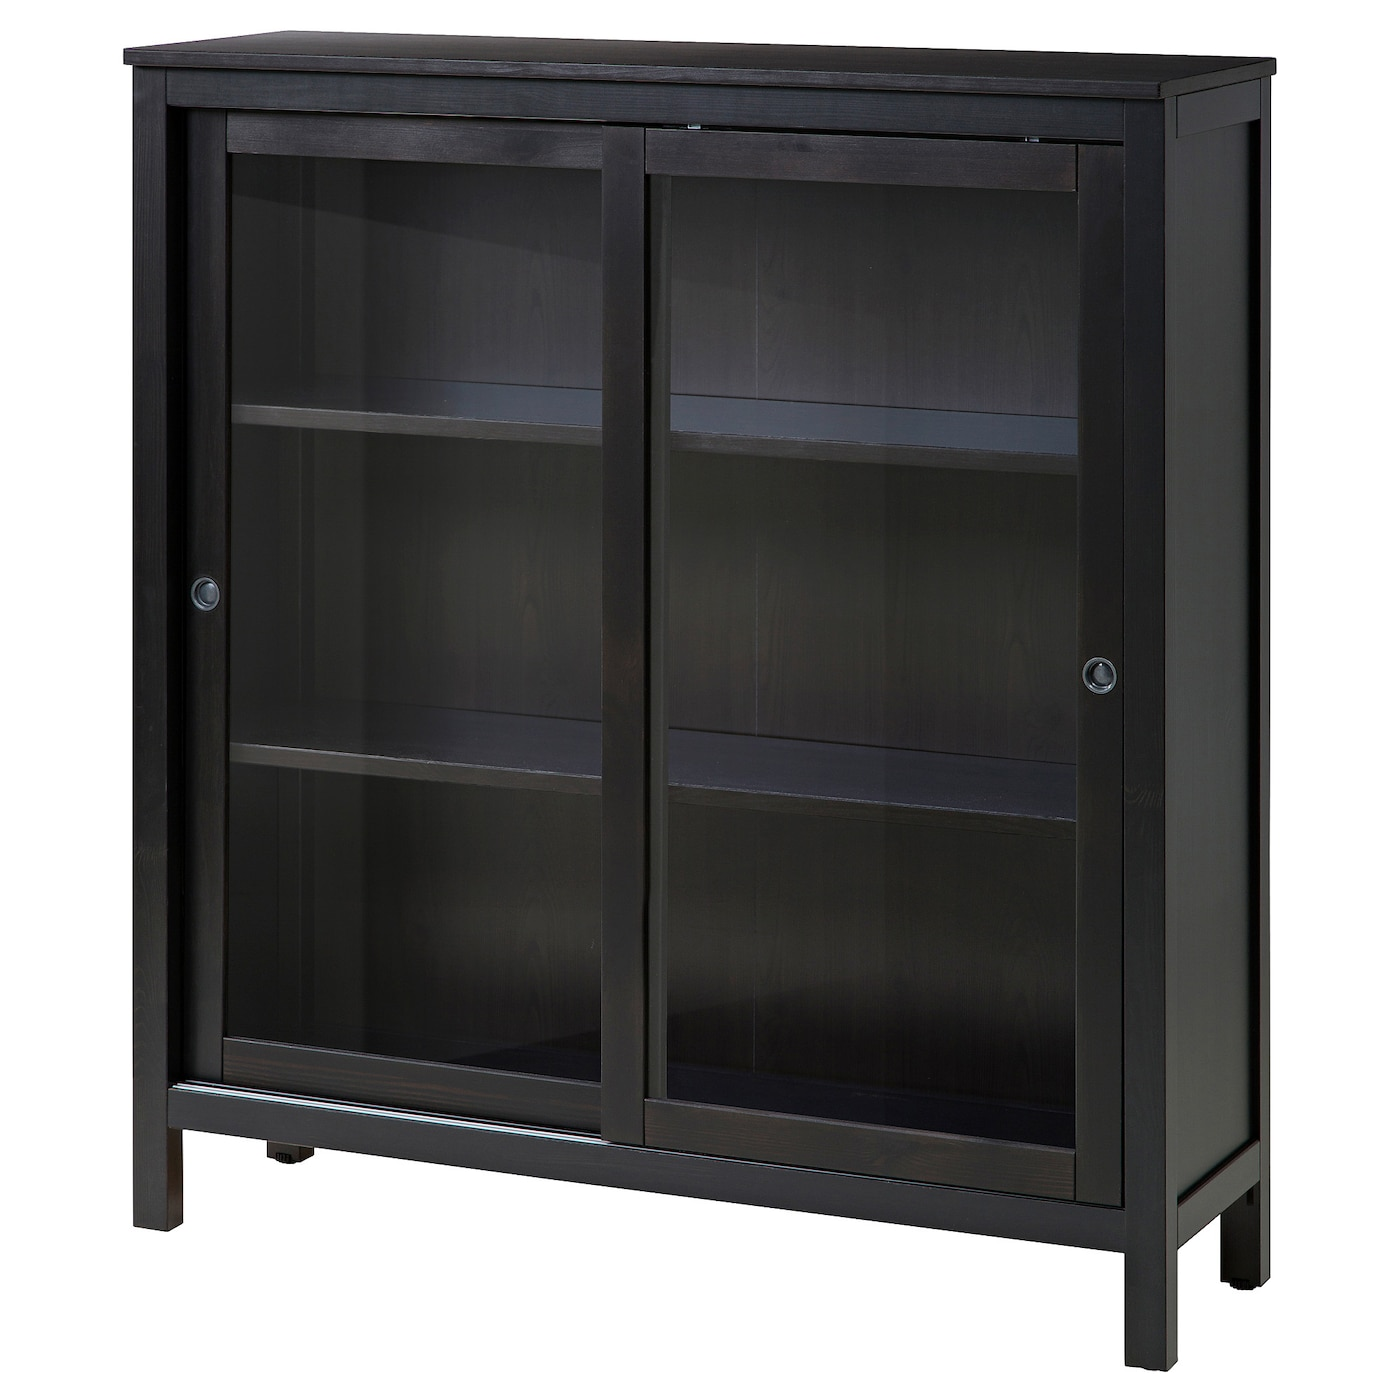 IKEA HEMNES Glass Door Cabinet Sliding Doors Do Not Take Up Any Space When  Opened Part 70